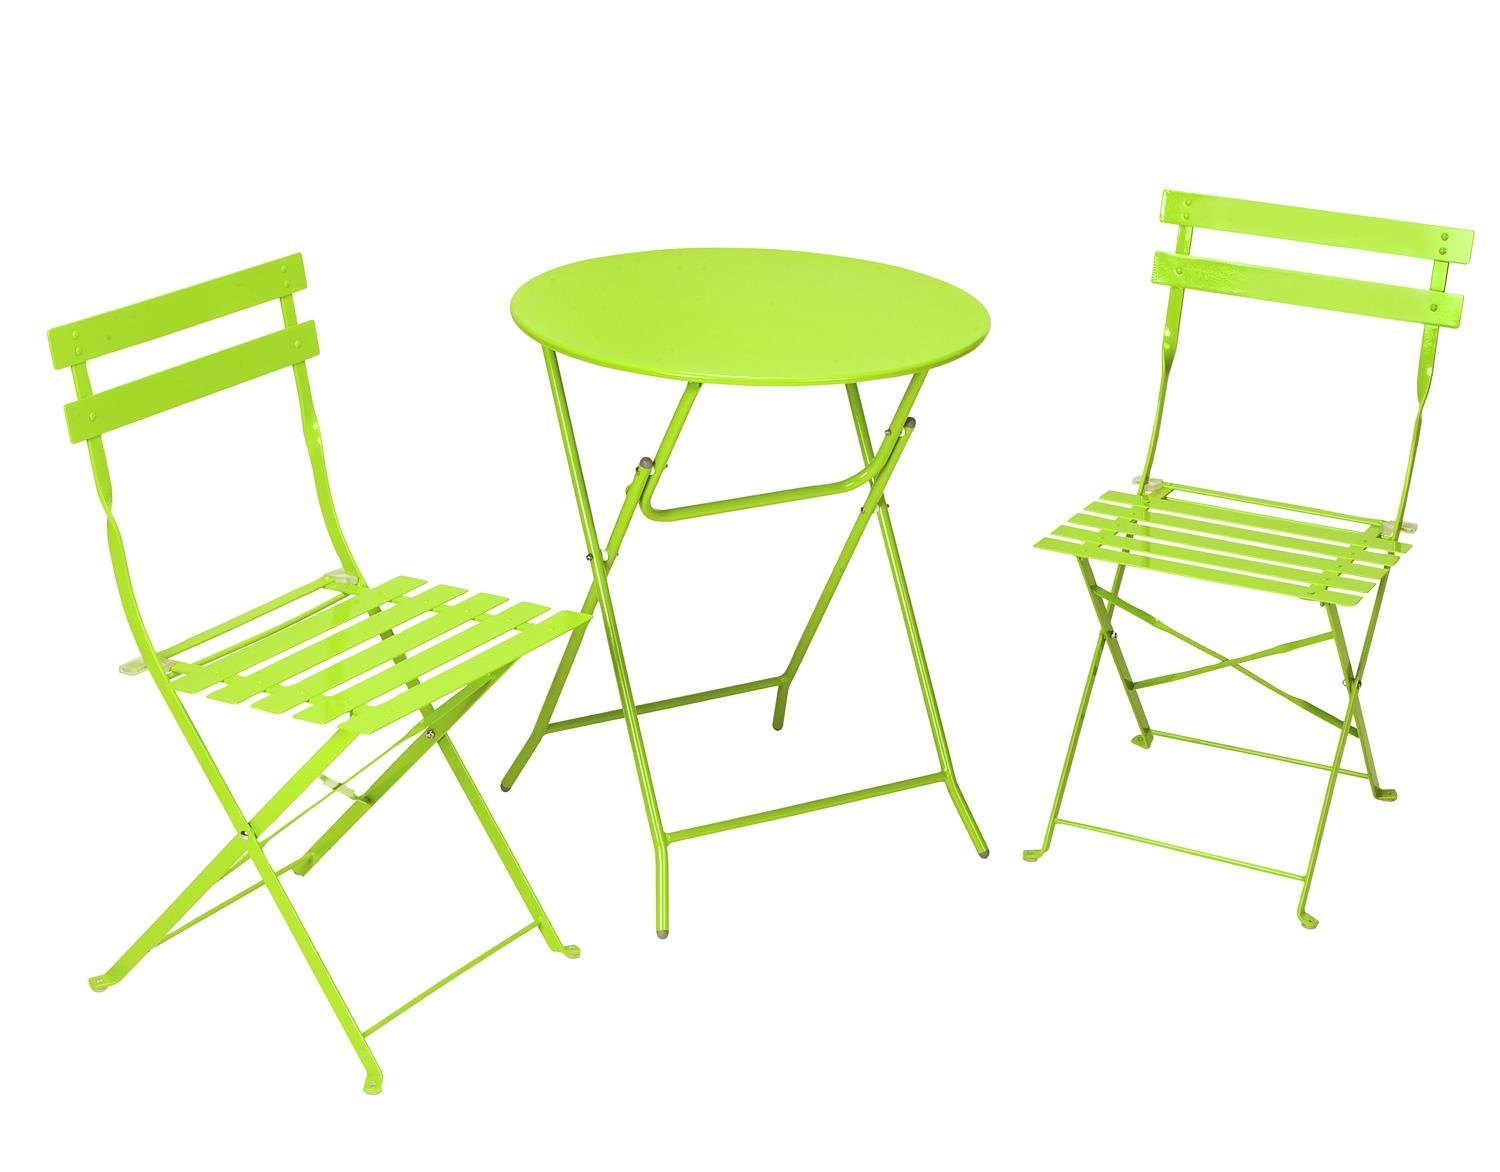 Lovely Amazon.com: Cosco 3 Piece Folding Bistro Style Patio Table And Chairs Set,  Bright Green: Kitchen U0026 Dining